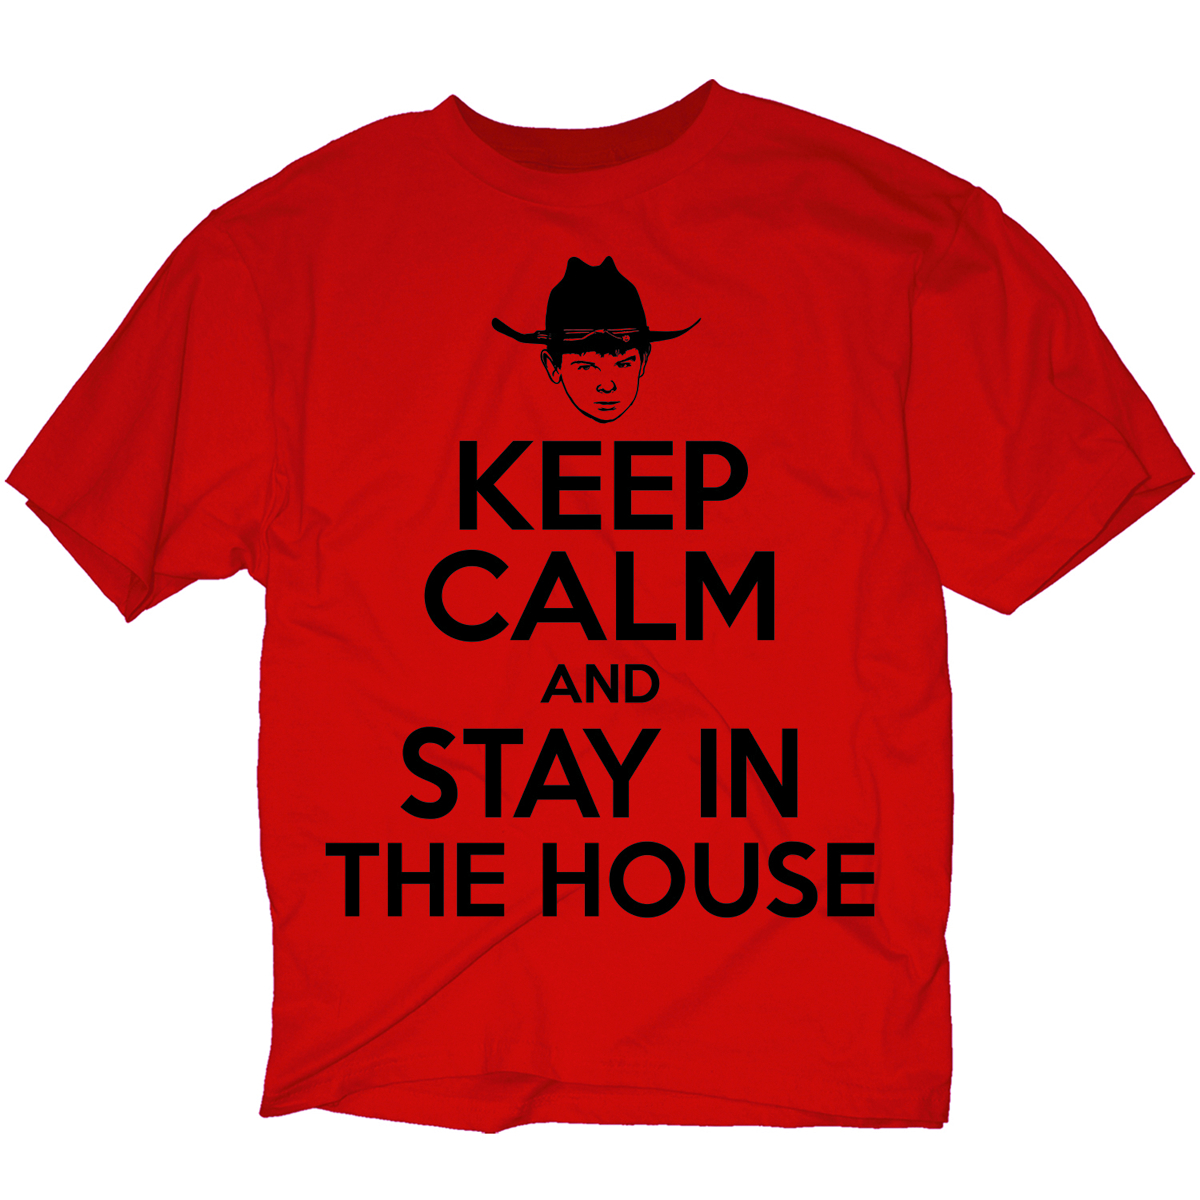 WALKING DEAD KEEP CALM STAY IN THE HOUSE PX RED T/S SM